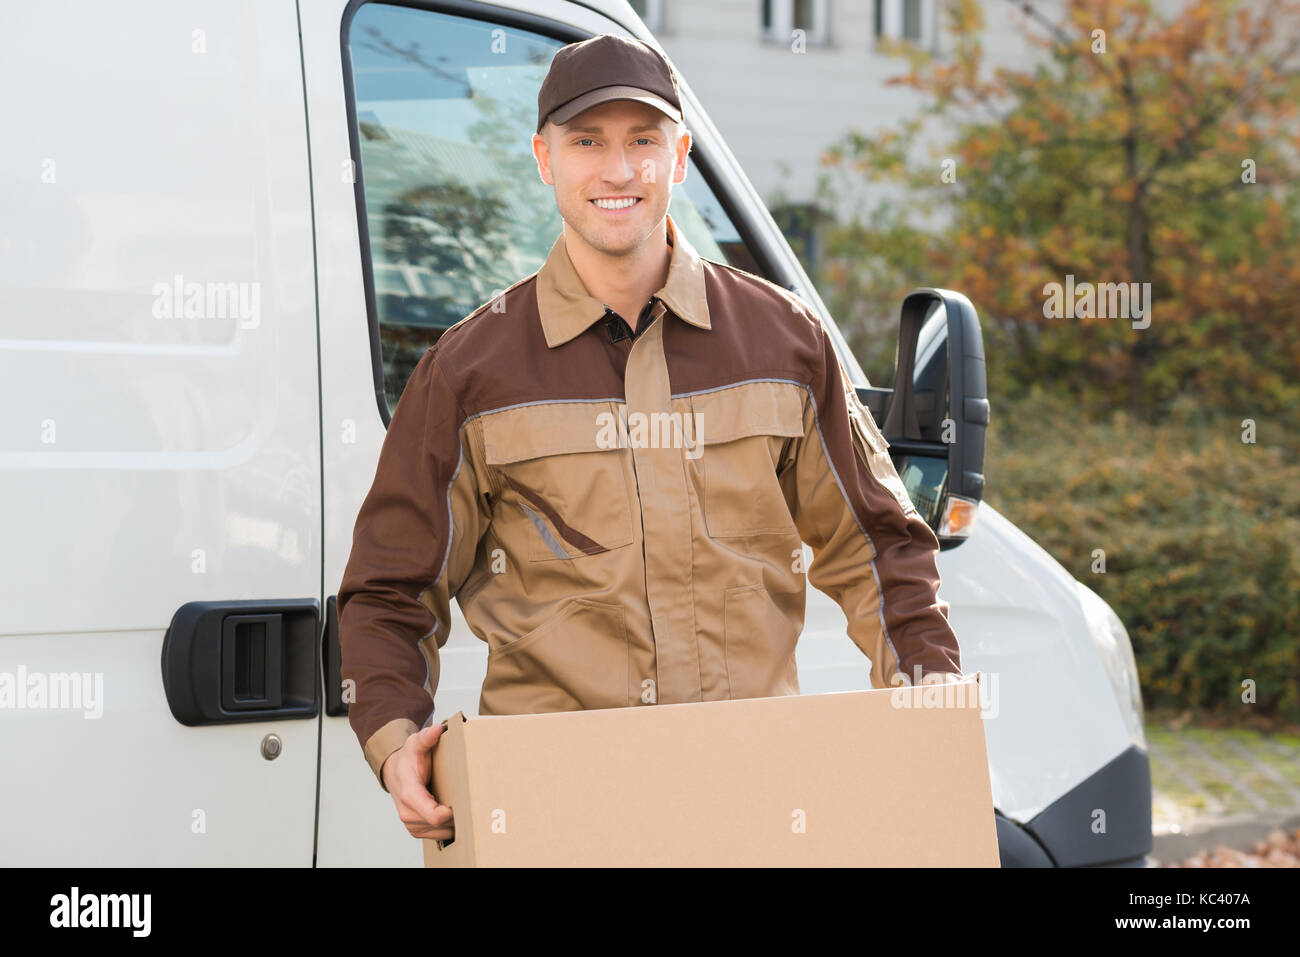 Portrait of young delivery man carrying cardboard box with truck in background - Stock Image